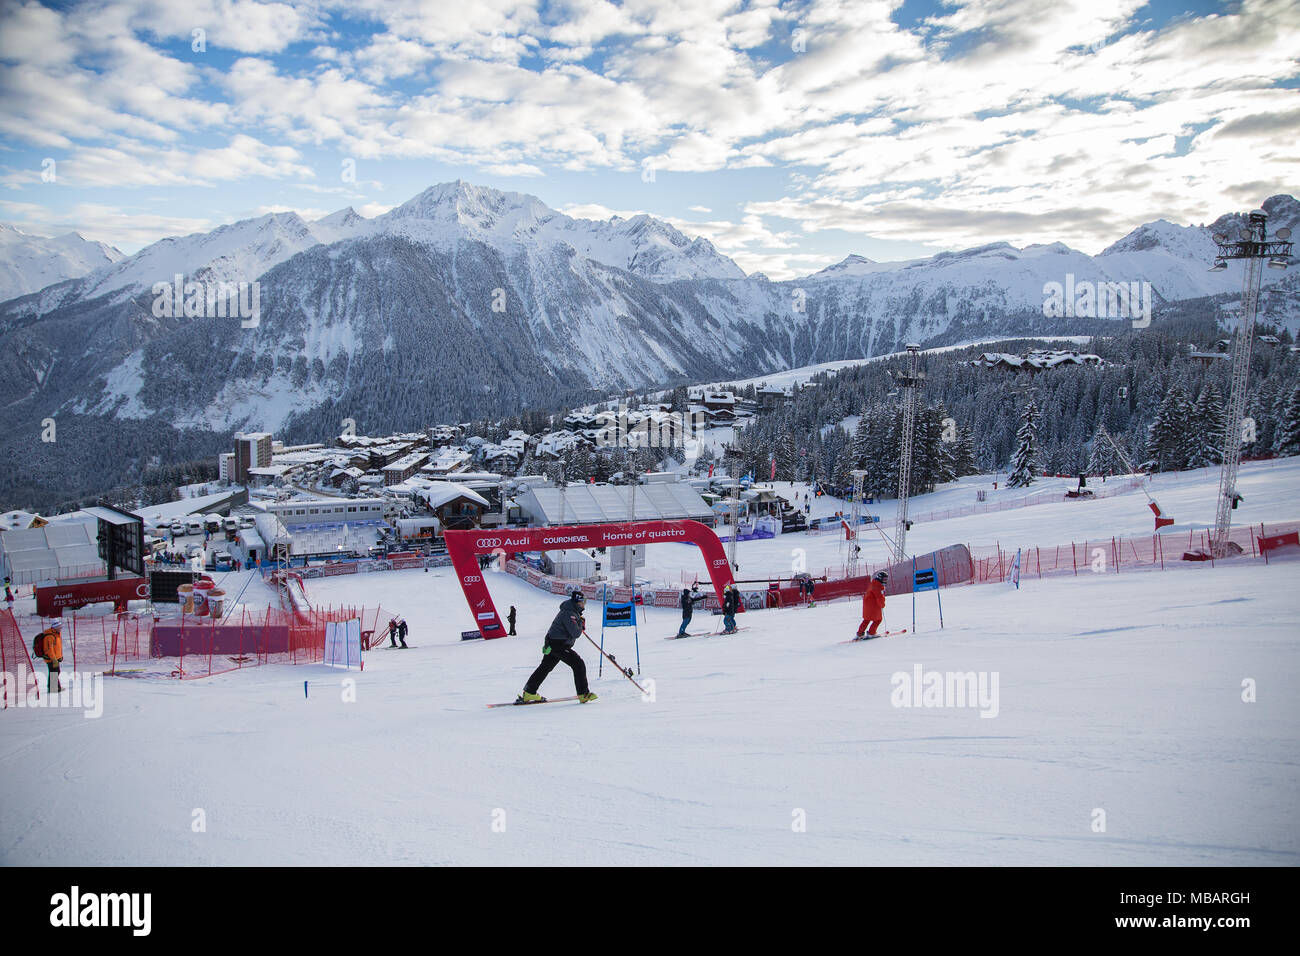 The slalom stadium of Courchevel 1850 during the course inspection of the Audi Fis Alpine Ski World Cup Women's Giant Slalom on the 20th Dcember 2017 - Stock Image